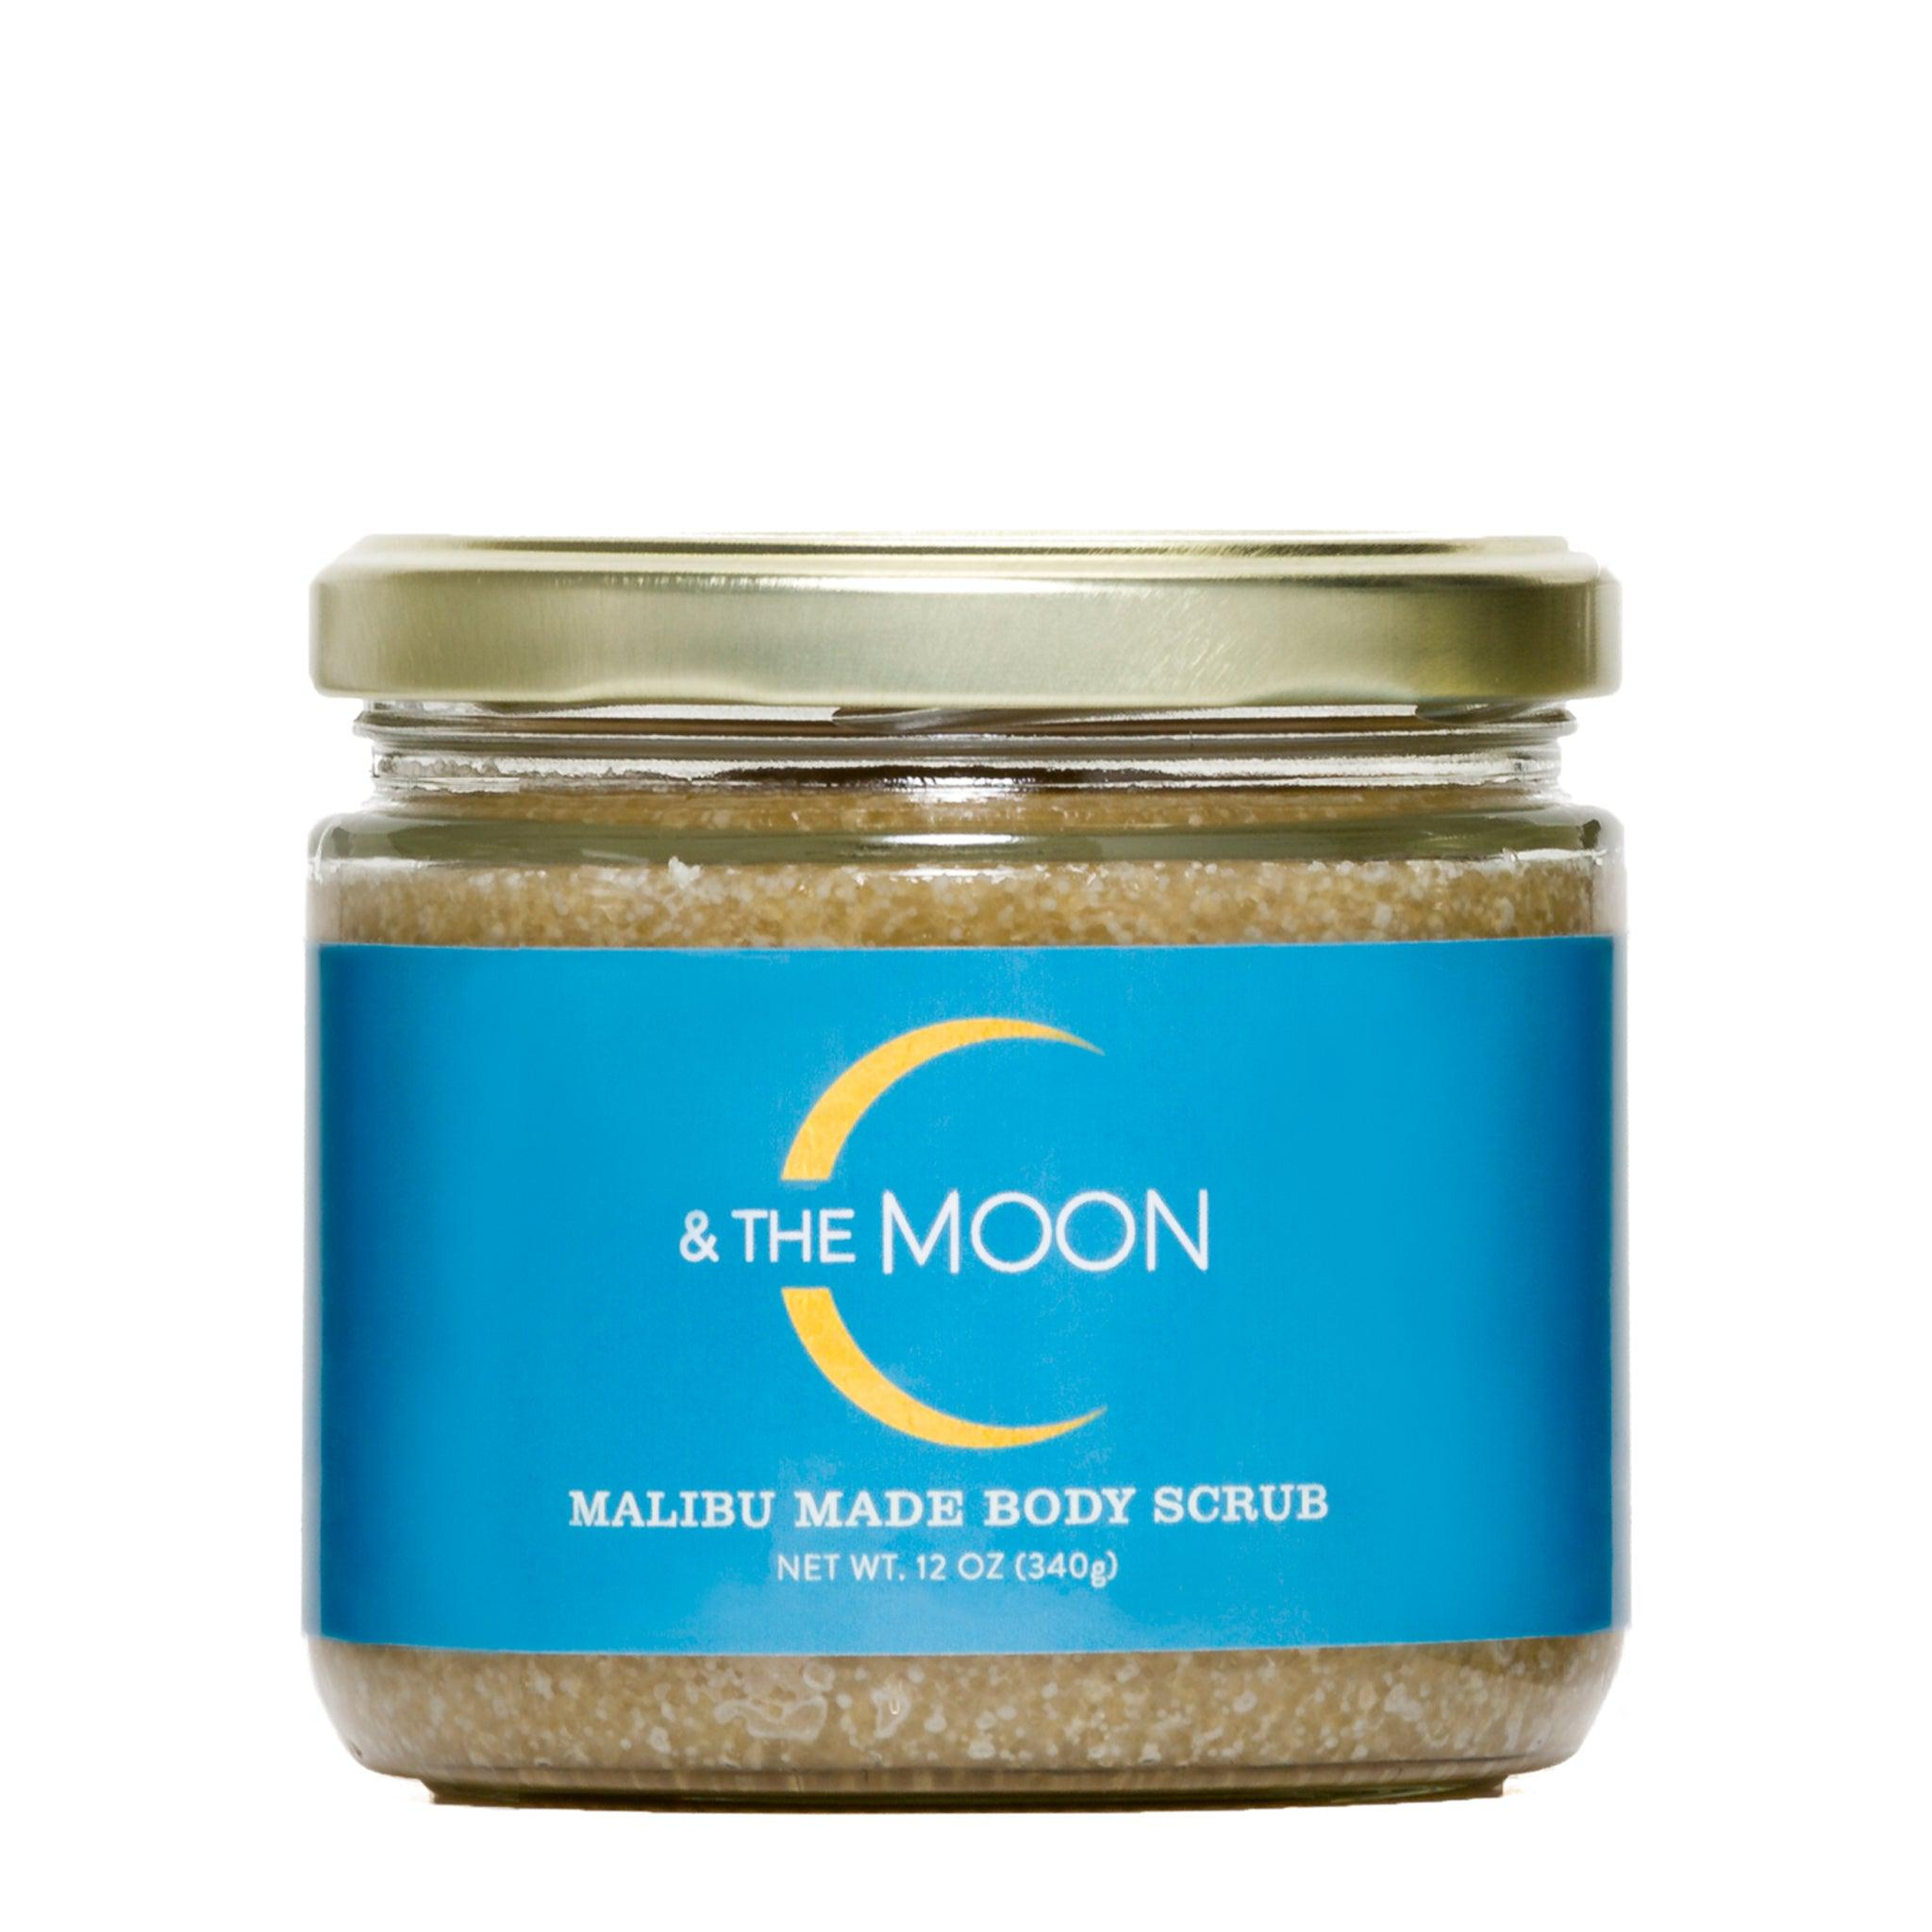 Malibu Made Body Scrub